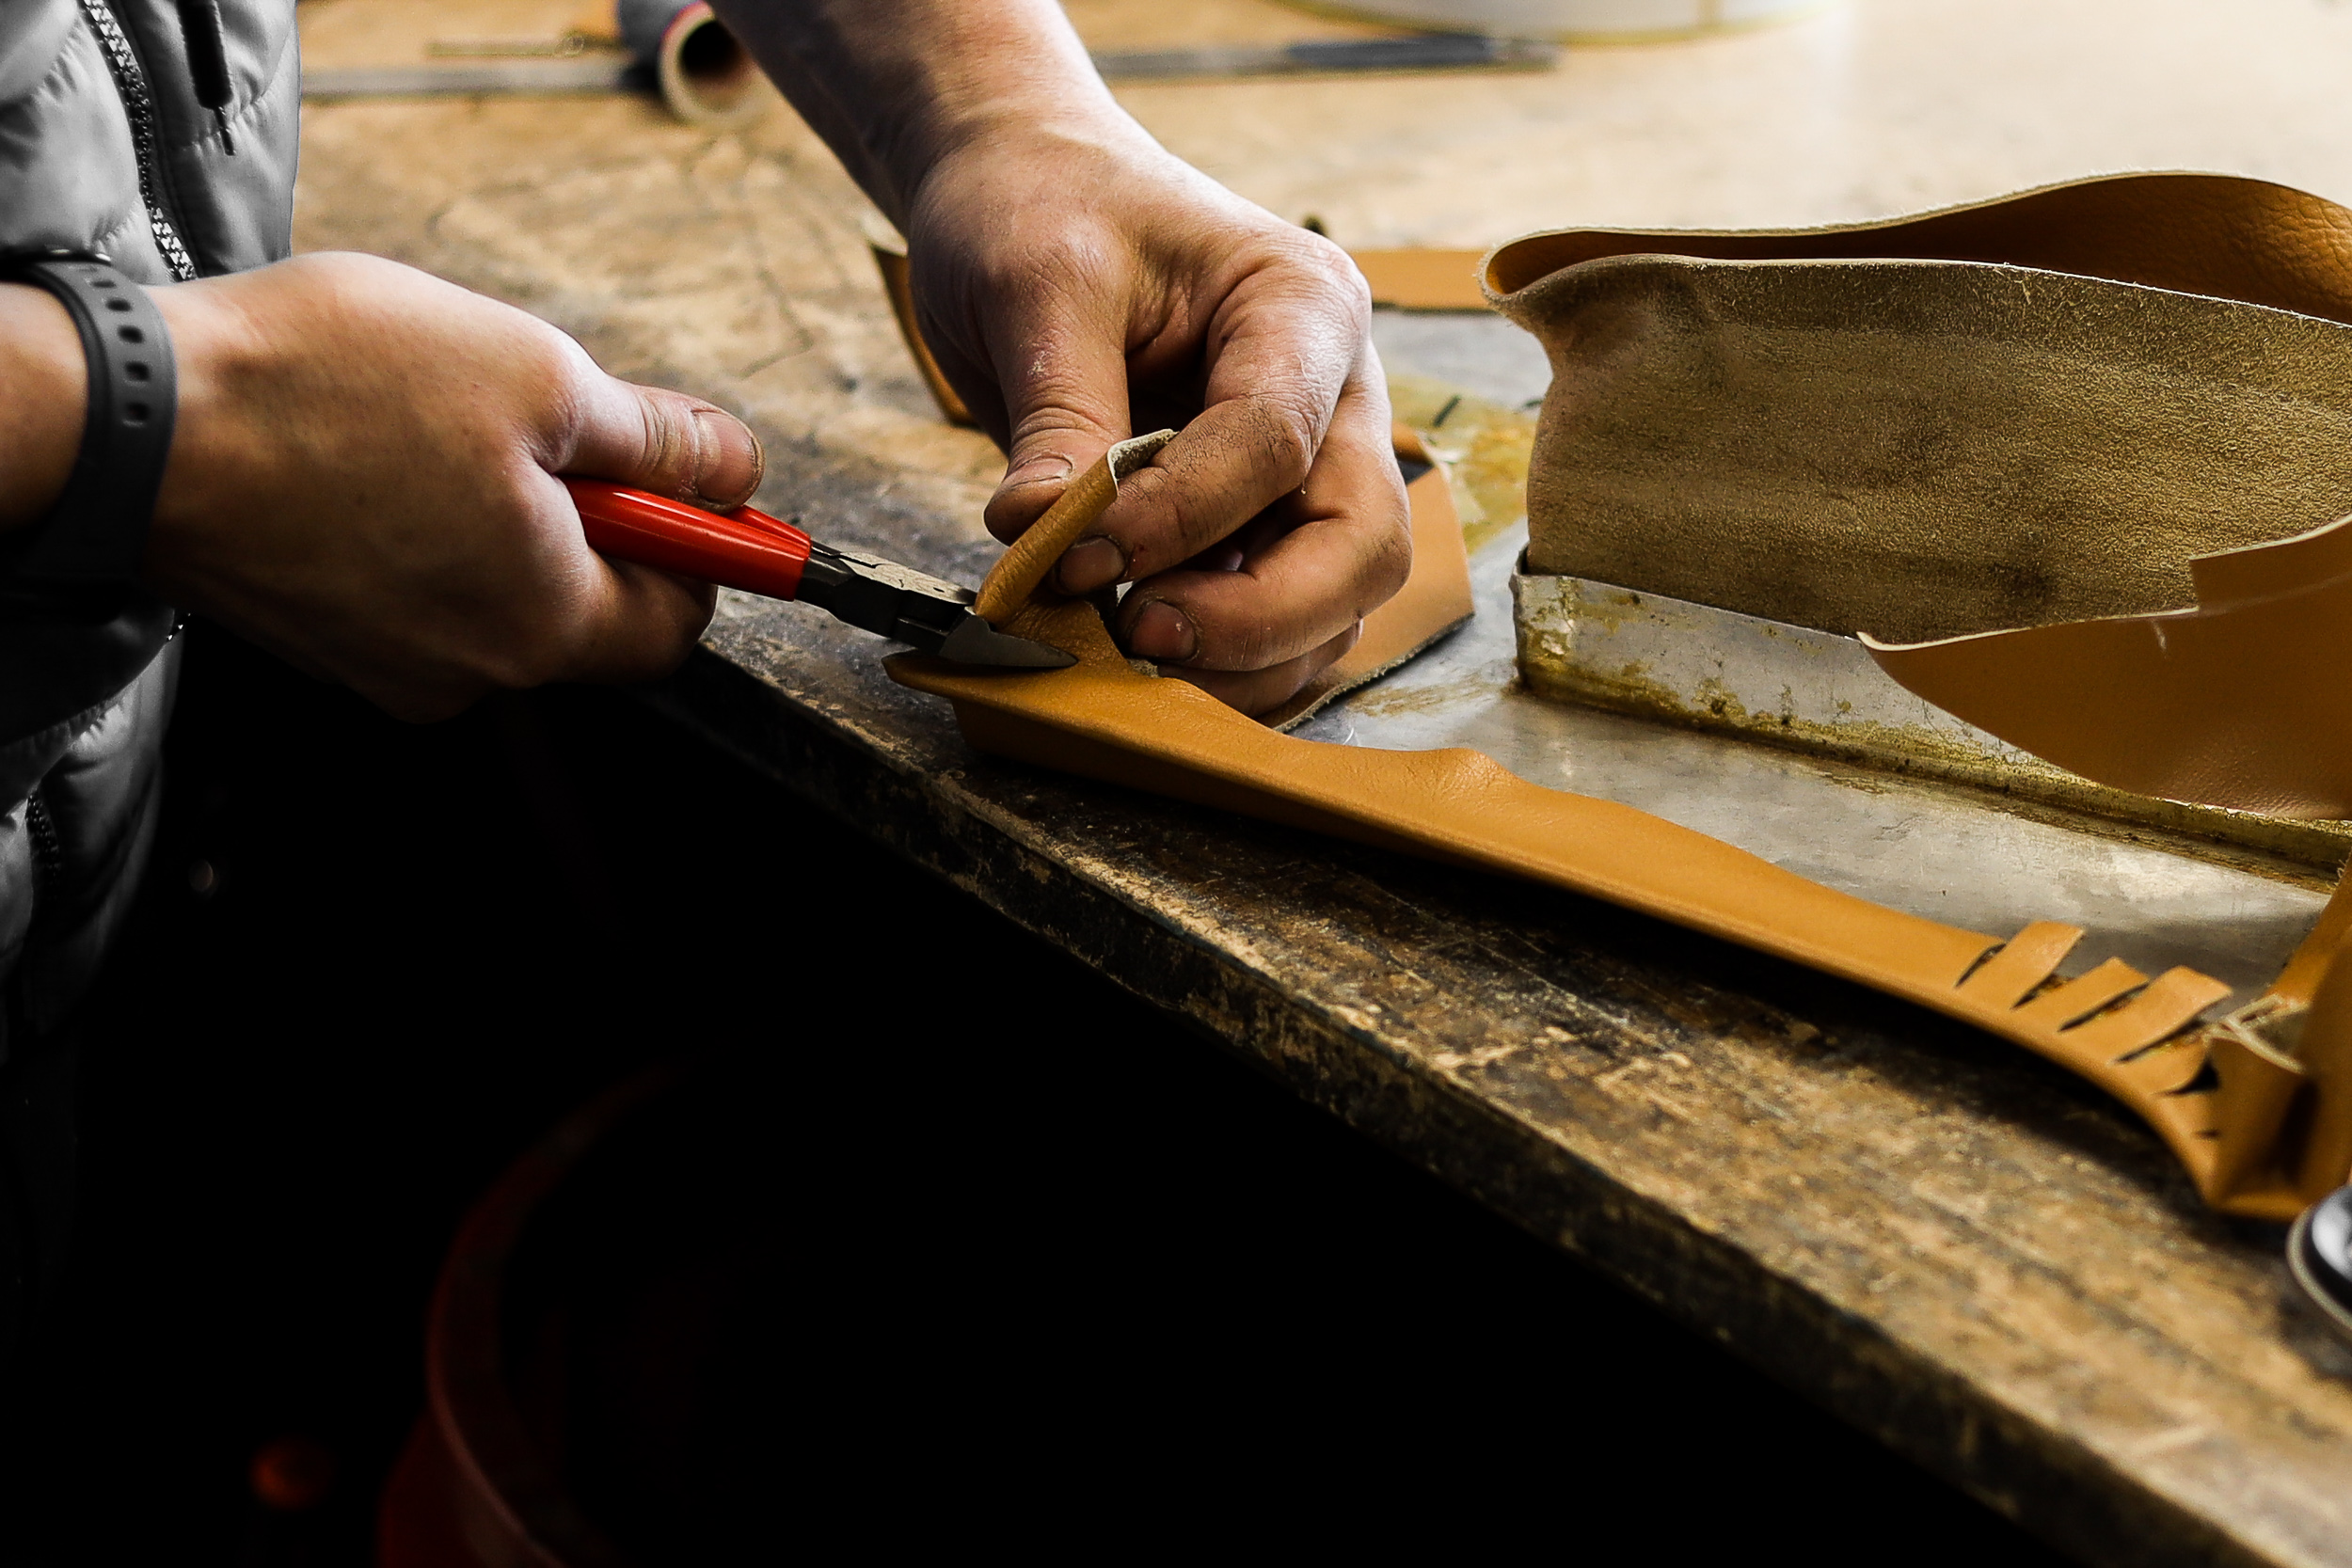 The experienced hands of a true artisan craftsman. Photo by   O'ROURKE COACHTRIMMERS